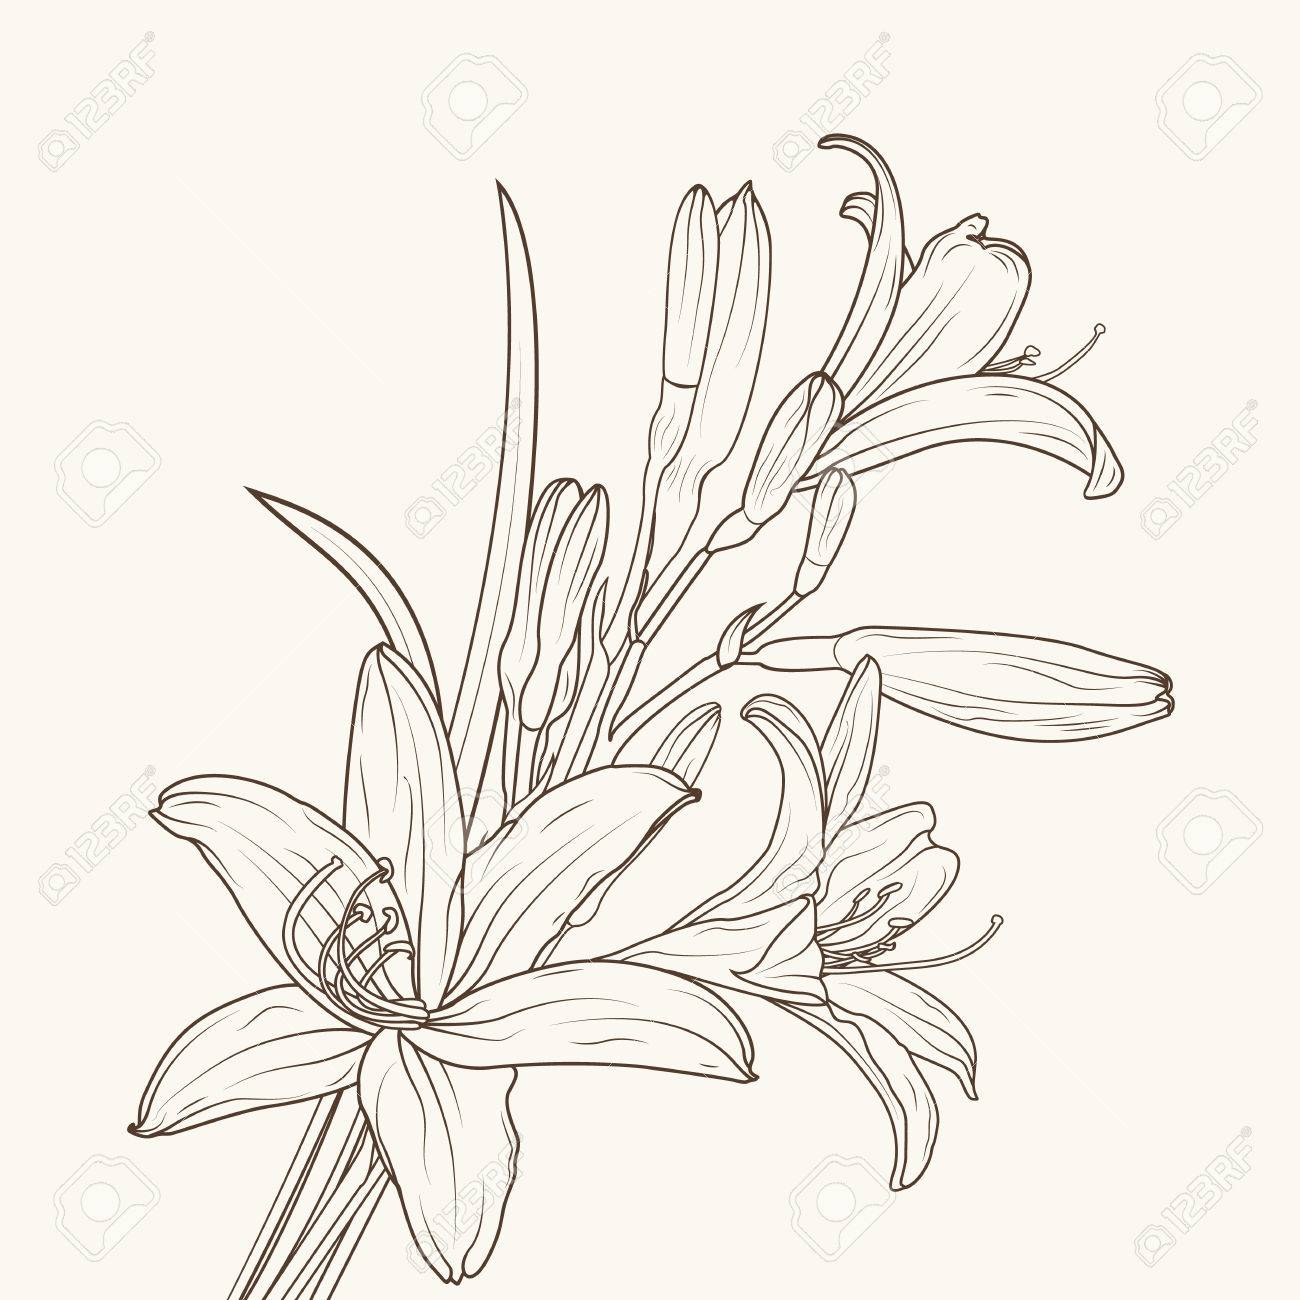 Isolated Elegant White Lily Flowers With Stem Leaves And Prominent